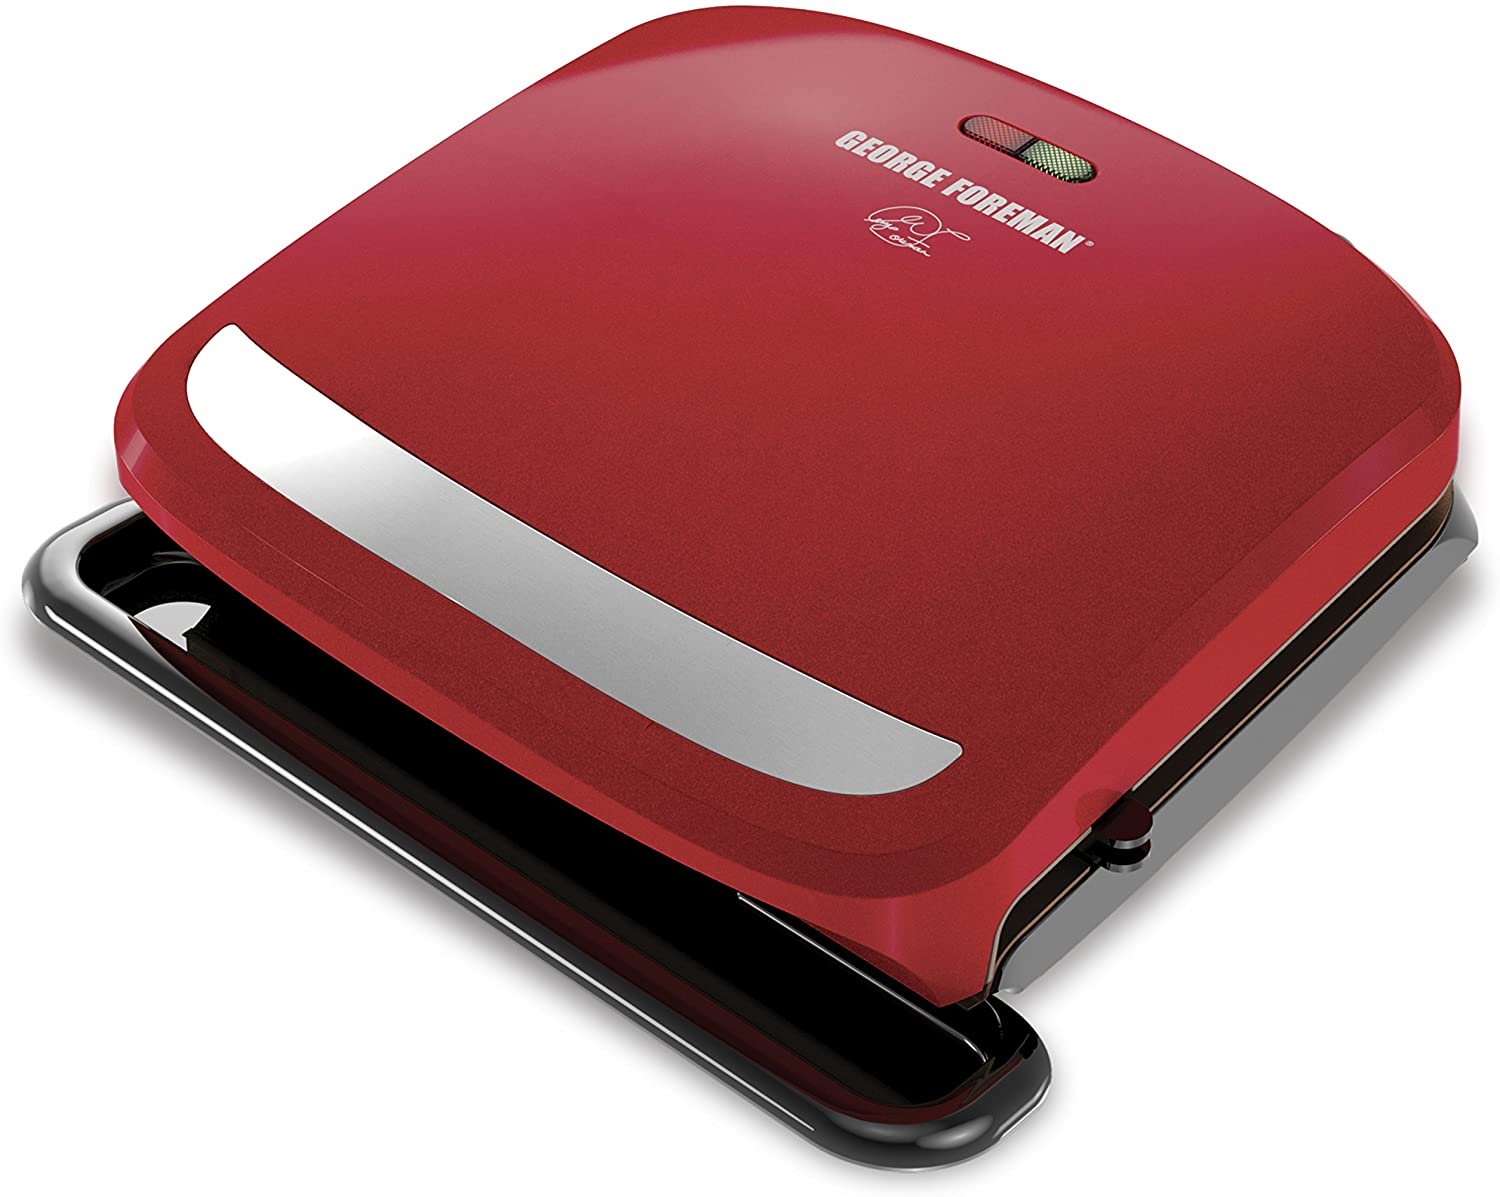 George Foreman 4-Serving Removable Plate Grill review